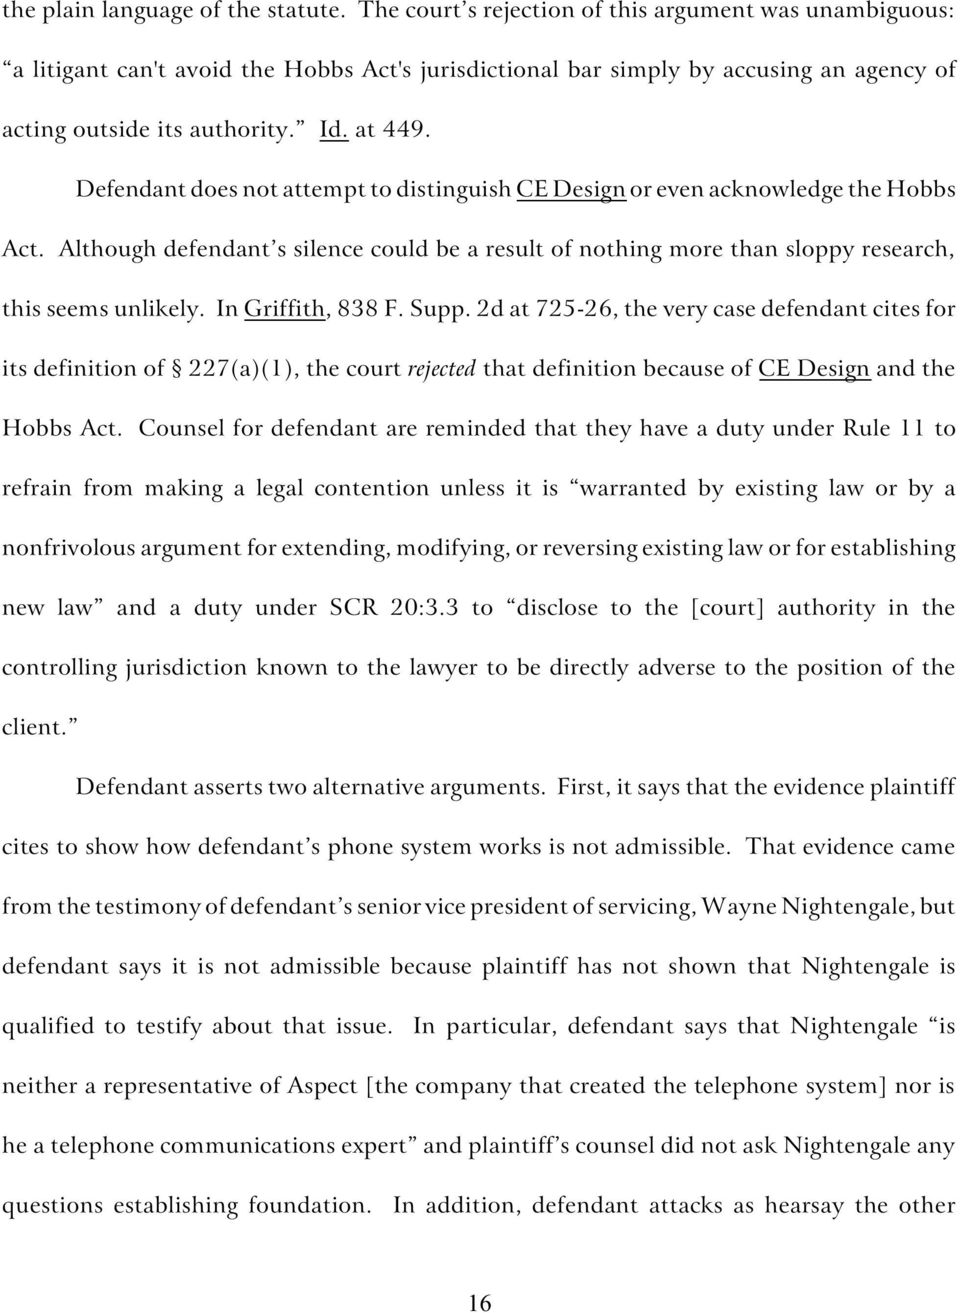 Defendant does not attempt to distinguish CE Design or even acknowledge the Hobbs Act. Although defendant s silence could be a result of nothing more than sloppy research, this seems unlikely.